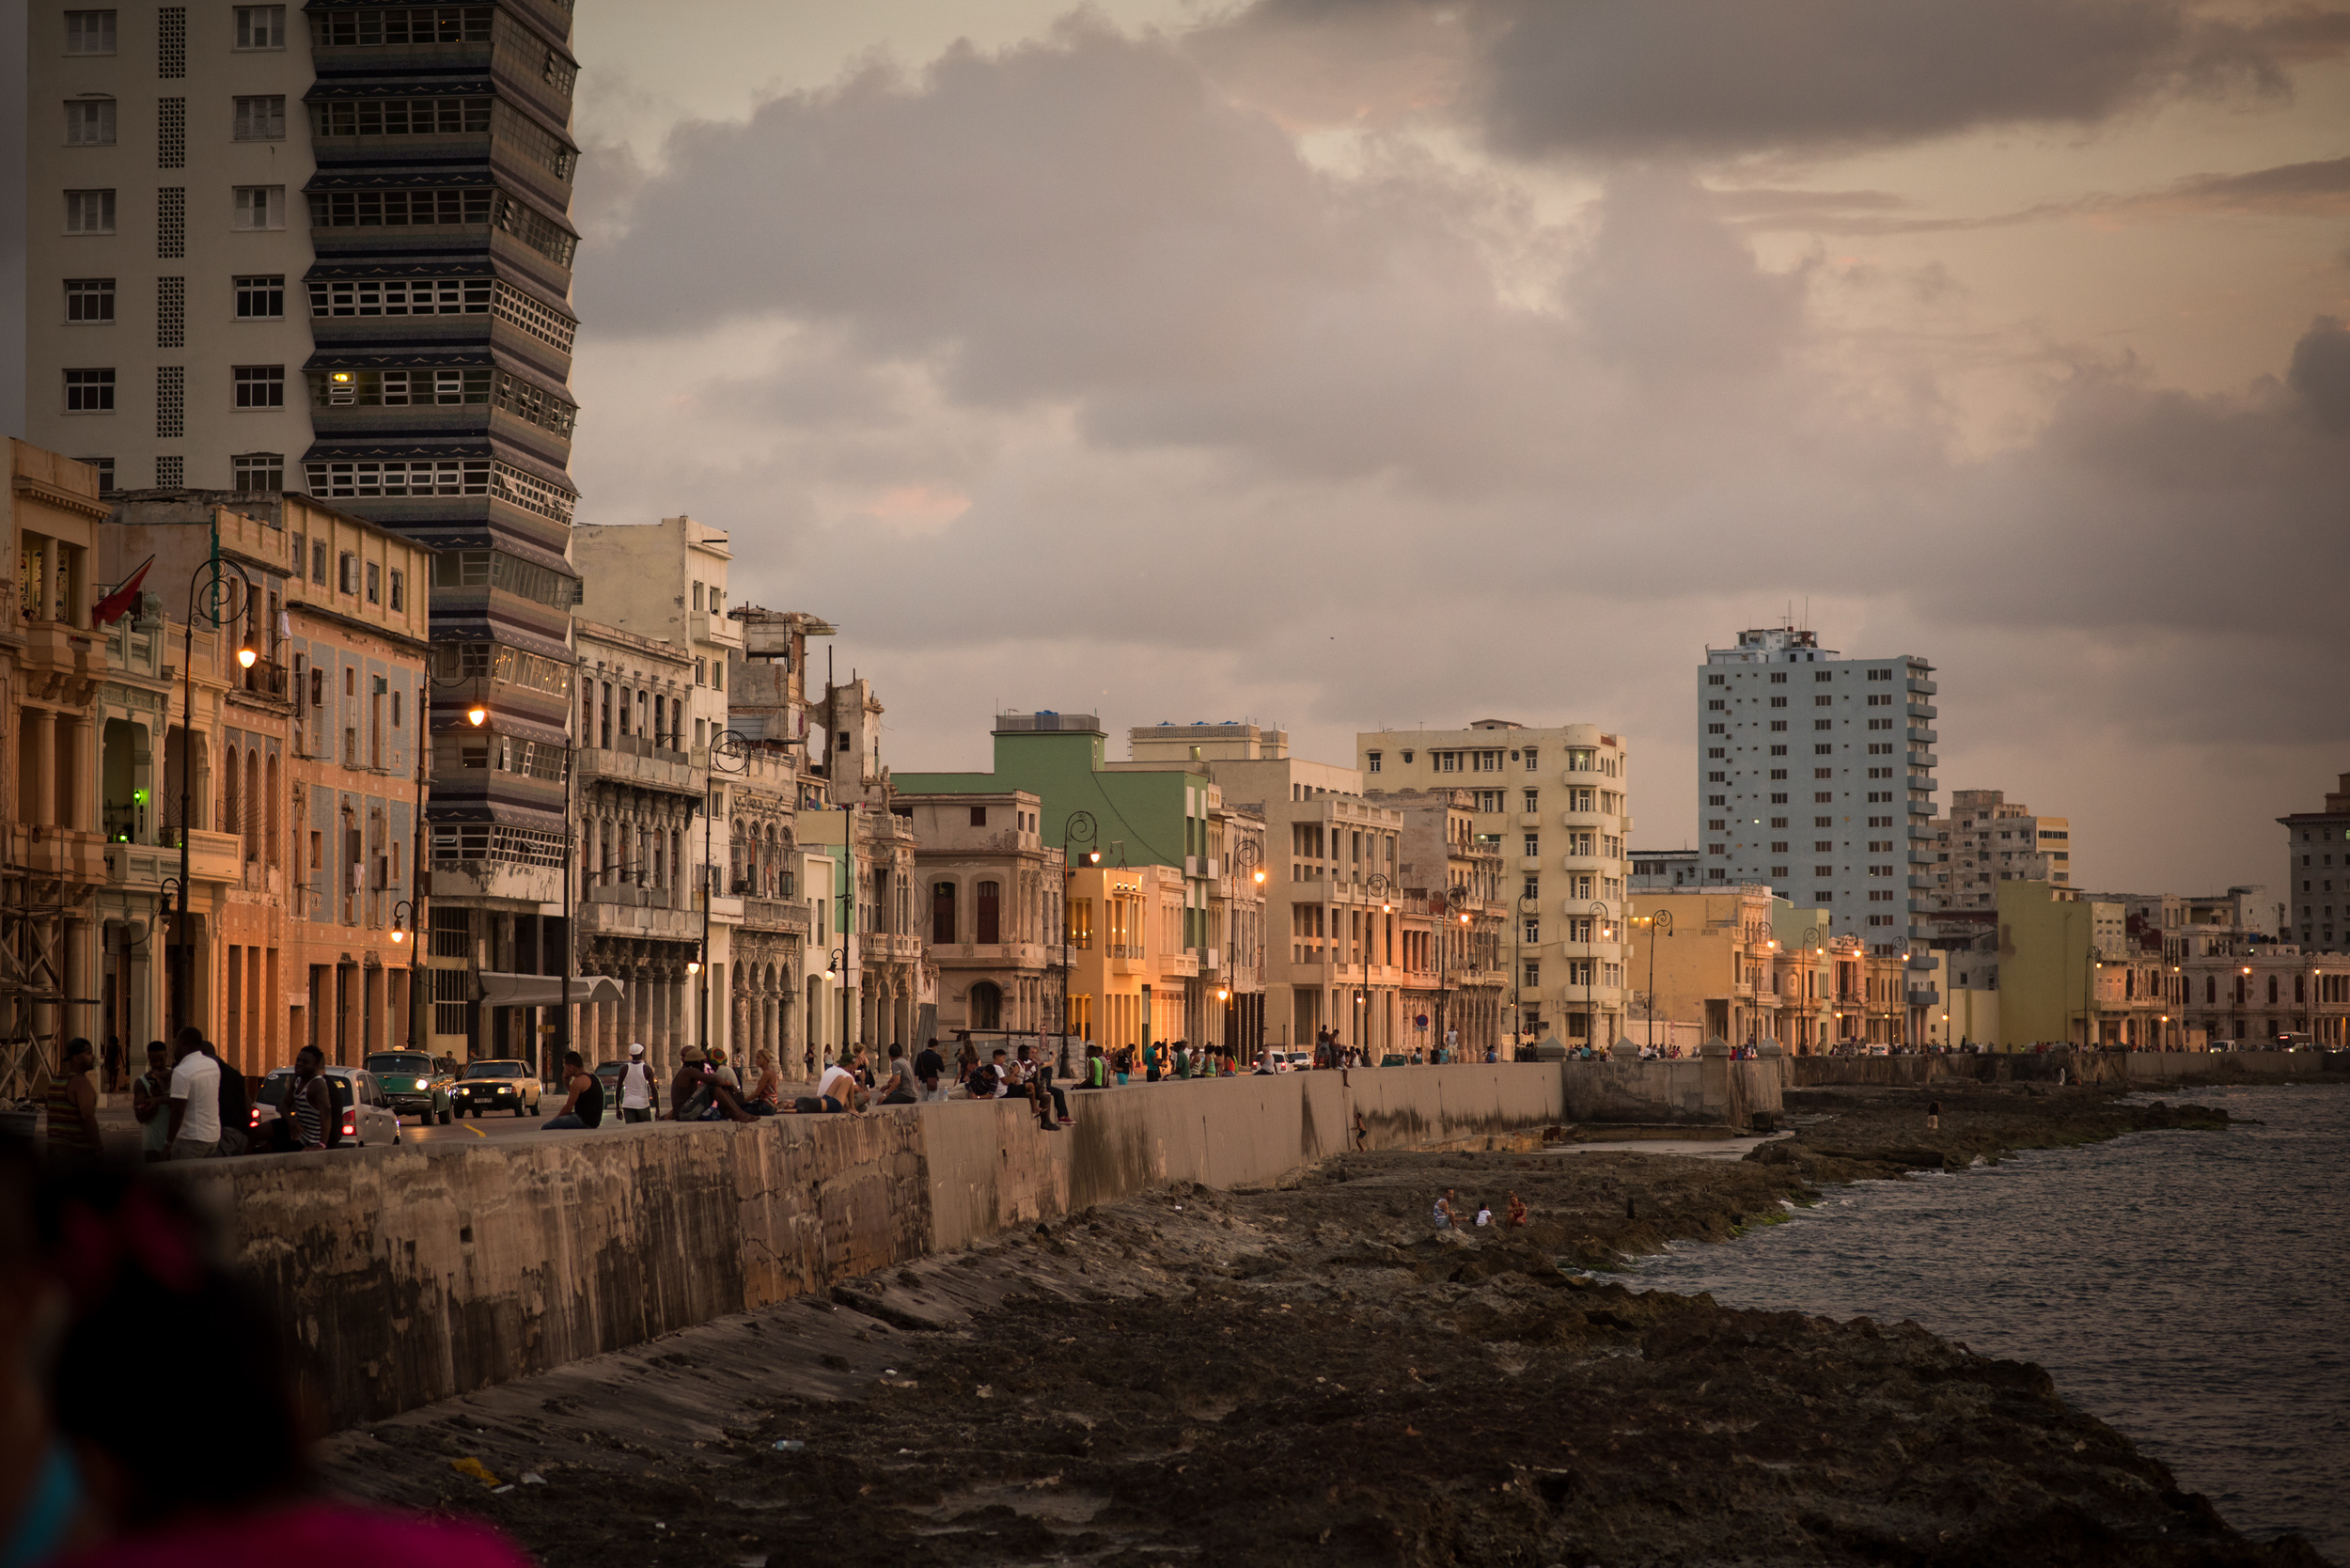 Dusk on the Malecon, the roadway and seawall along the bay that is a gathering place for Cubans and tourists alike